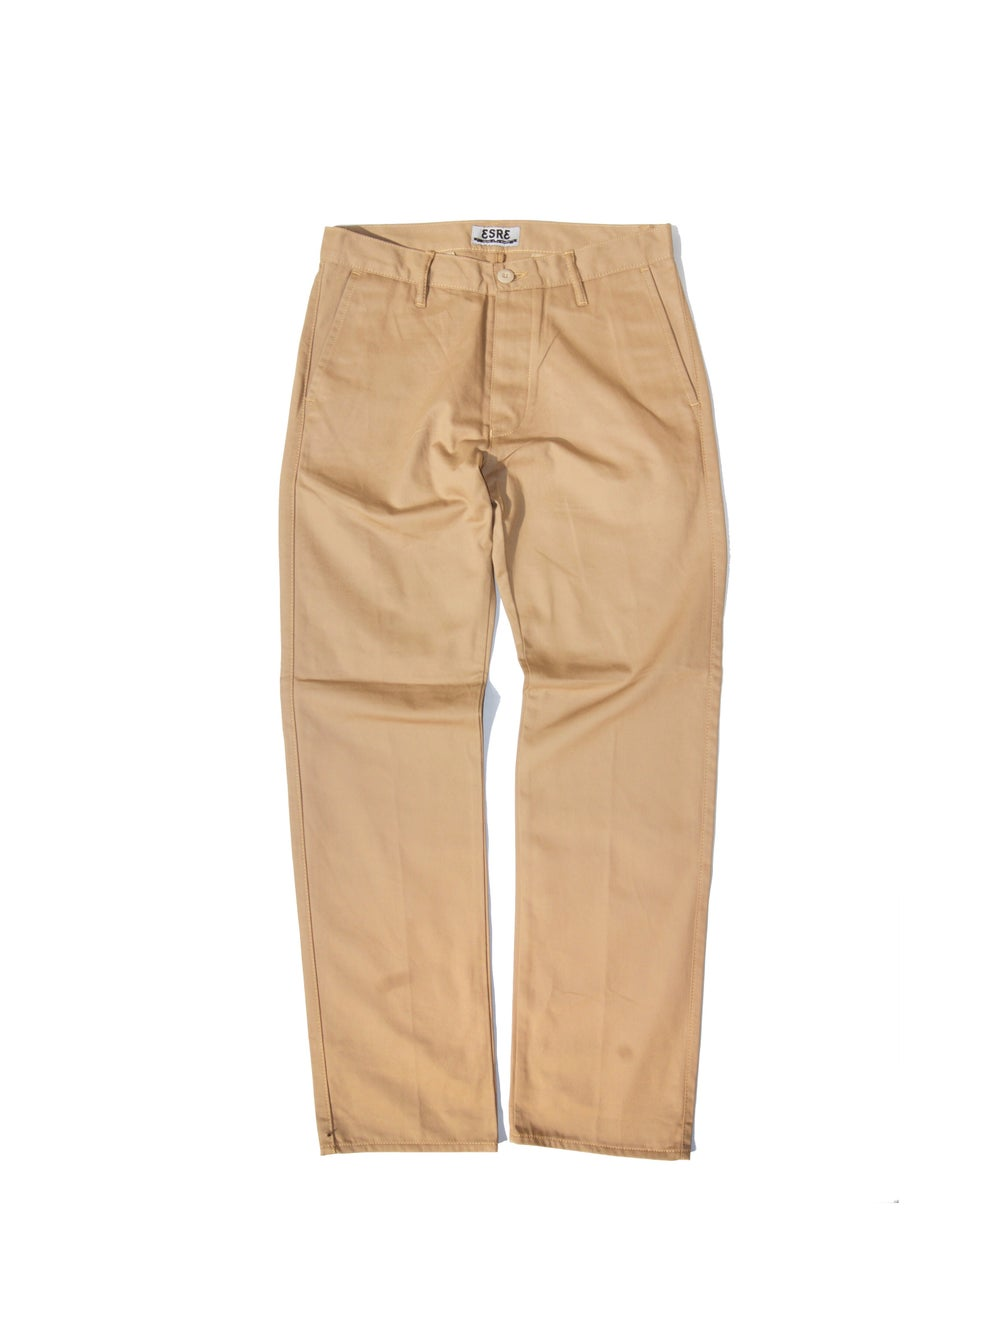 Image of Khaki Work Chino